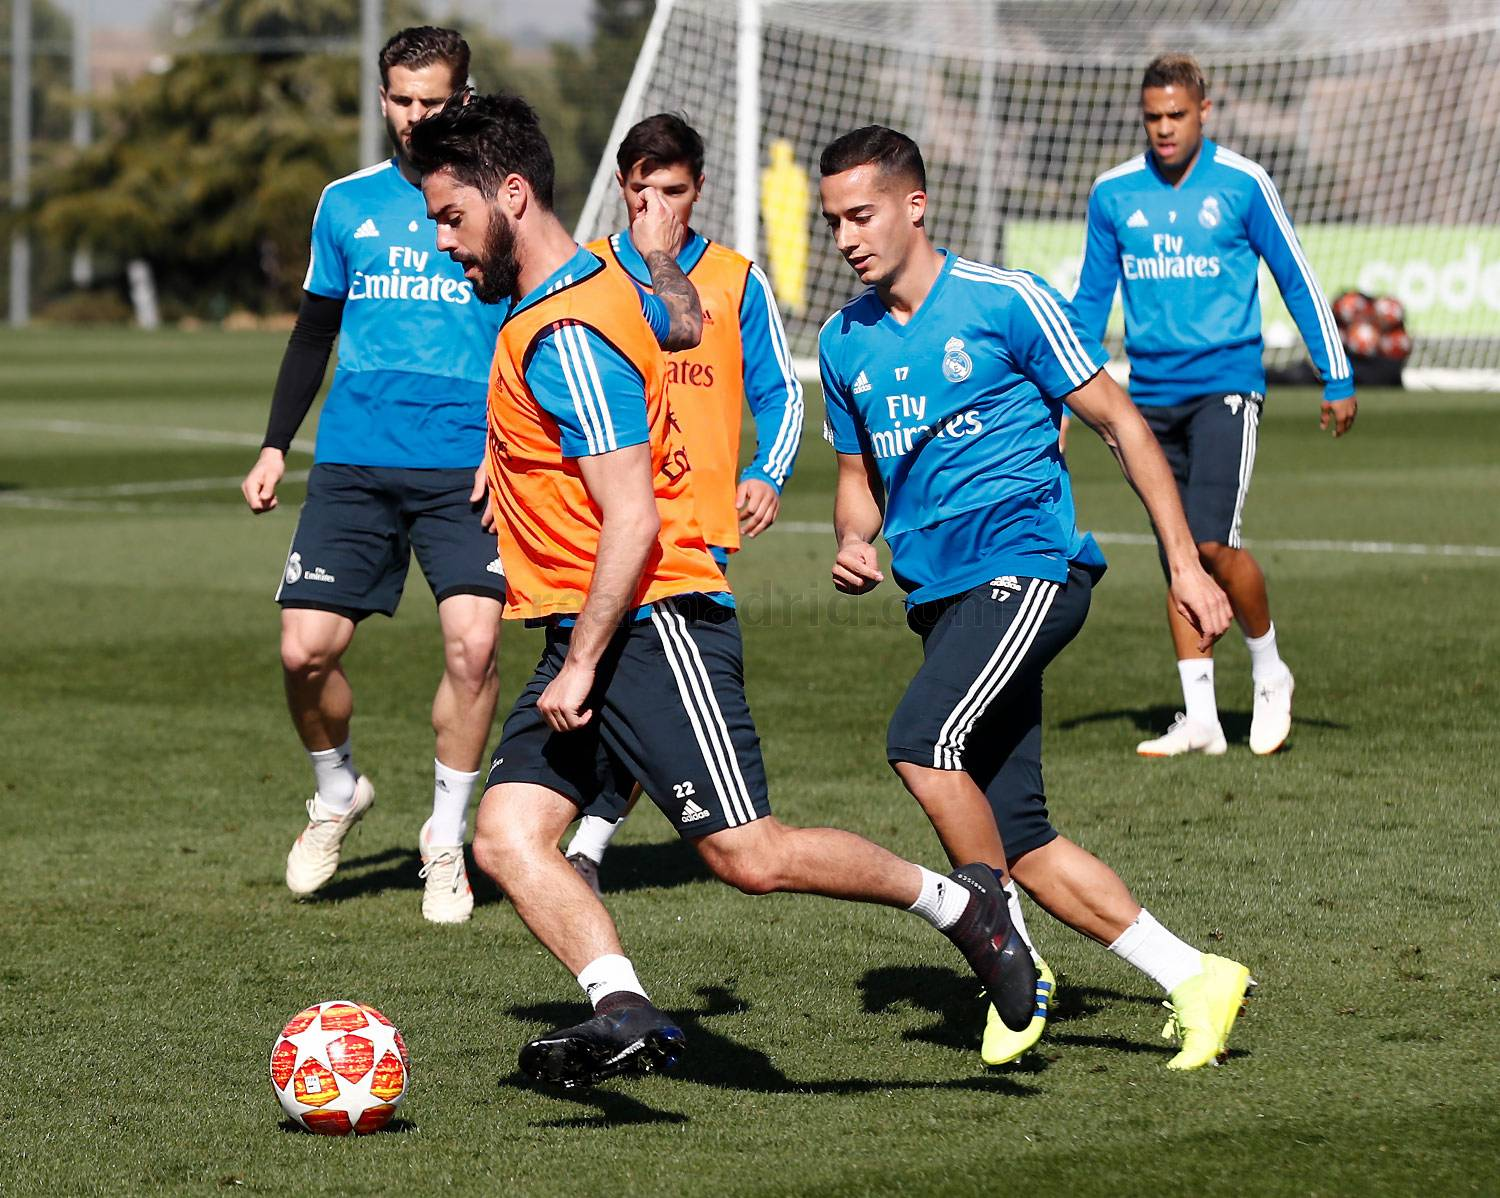 Real Madrid - Entrenamiento del Real Madrid - 03-03-2019